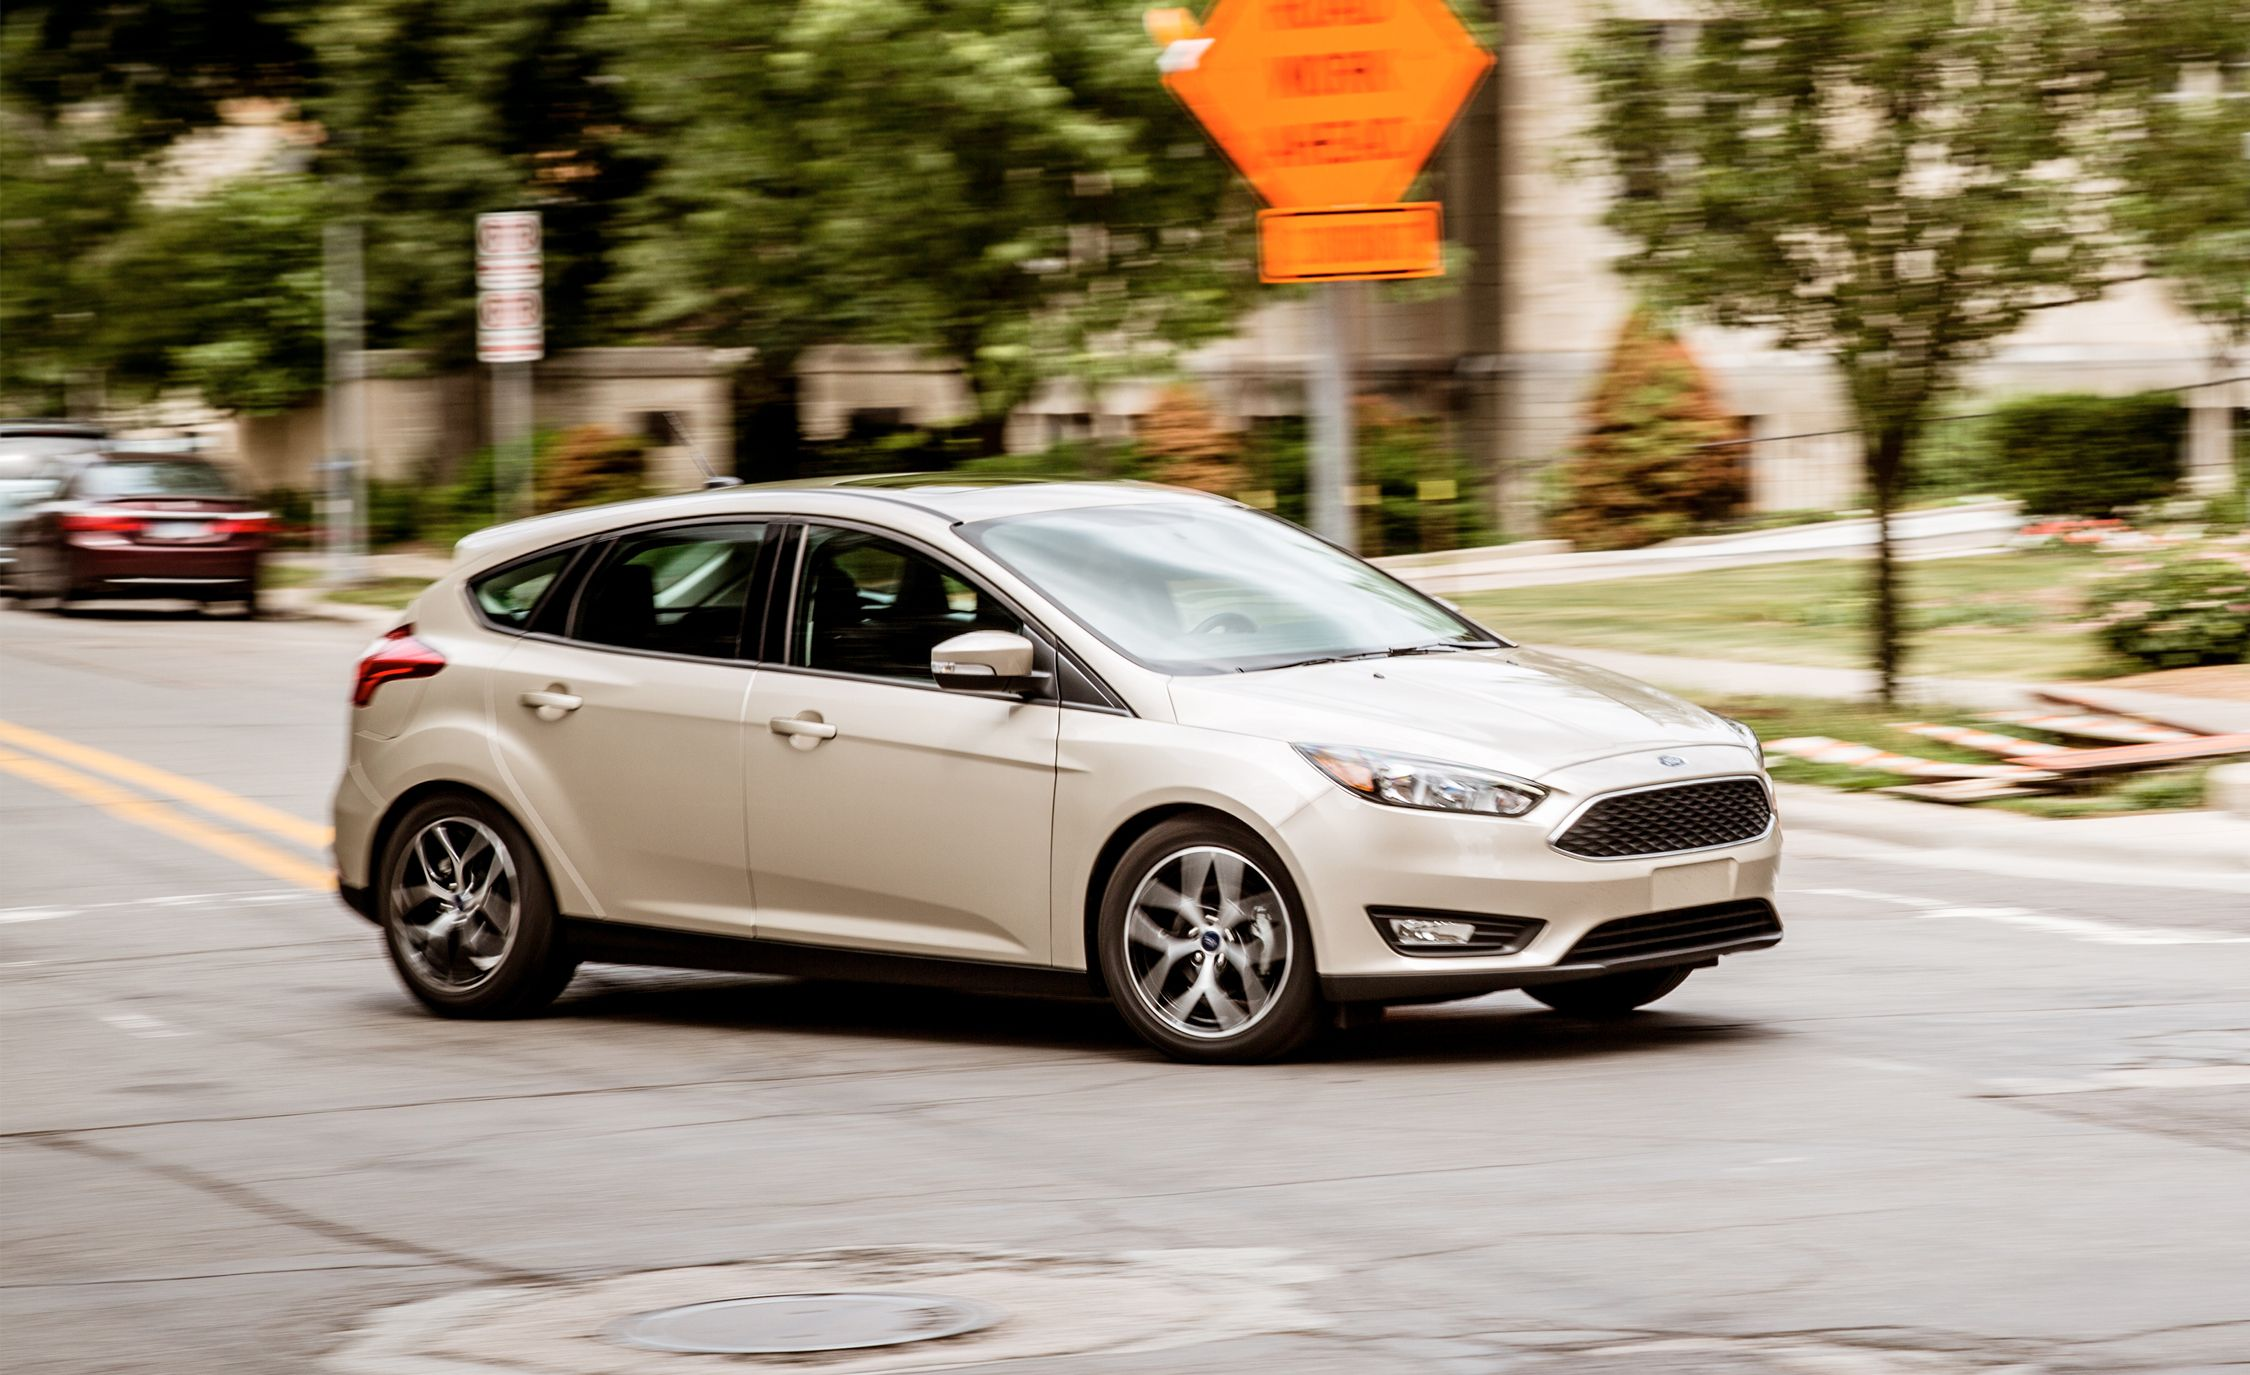 2019 Ford Focus Reviews Ford Focus Price Photos And Specs Car